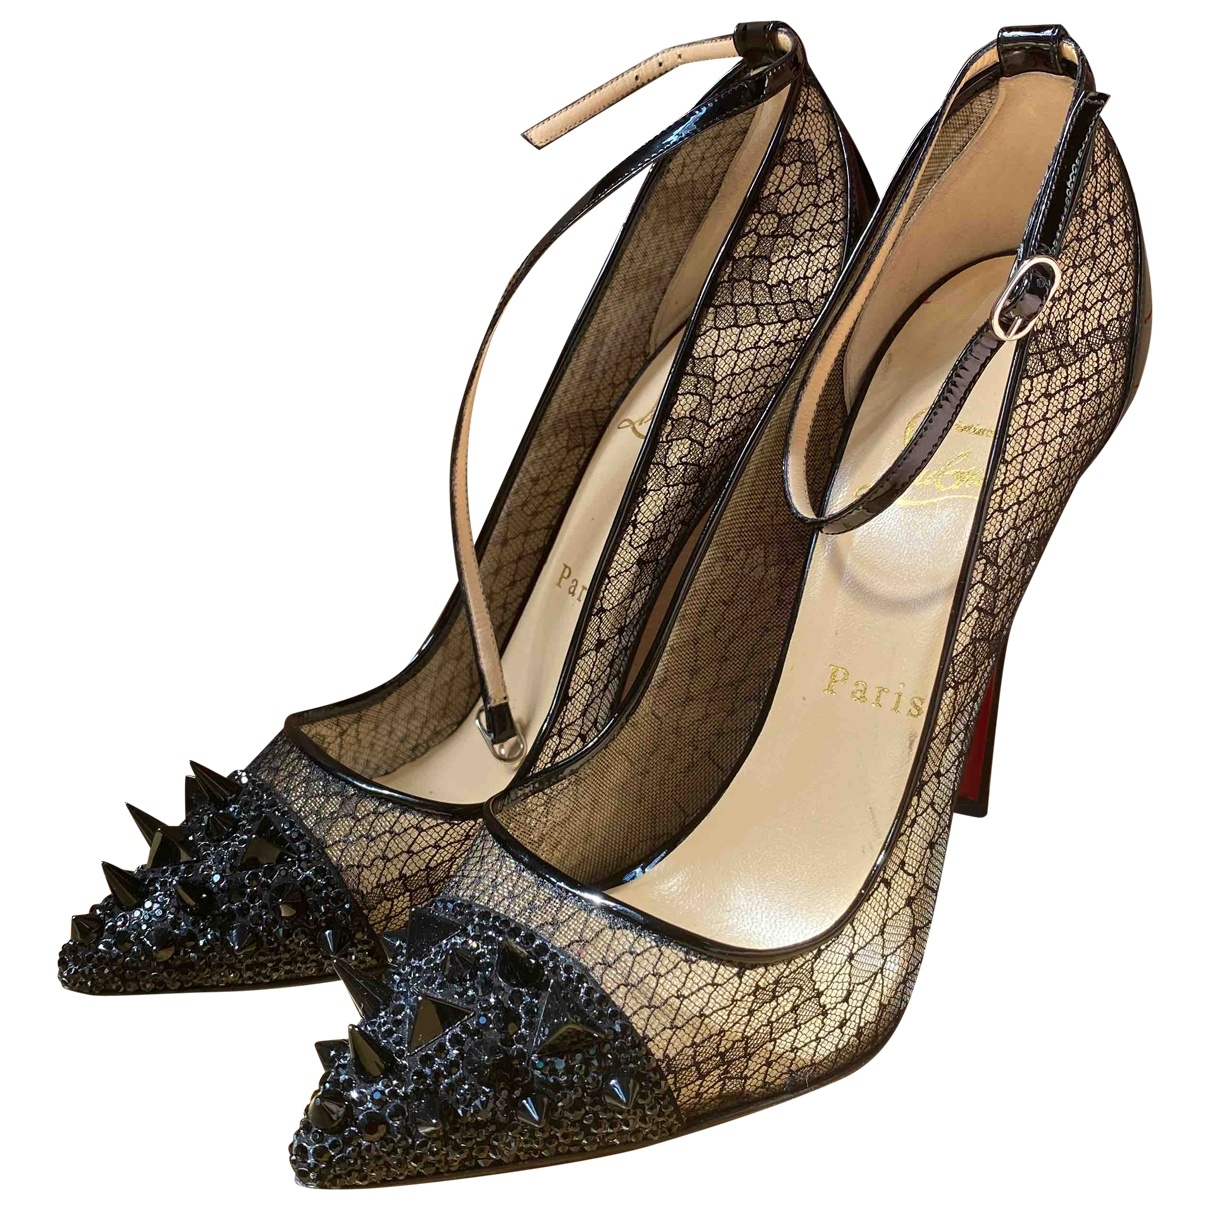 Christian Louboutin \N Black Patent leather Heels for Women 37.5 IT